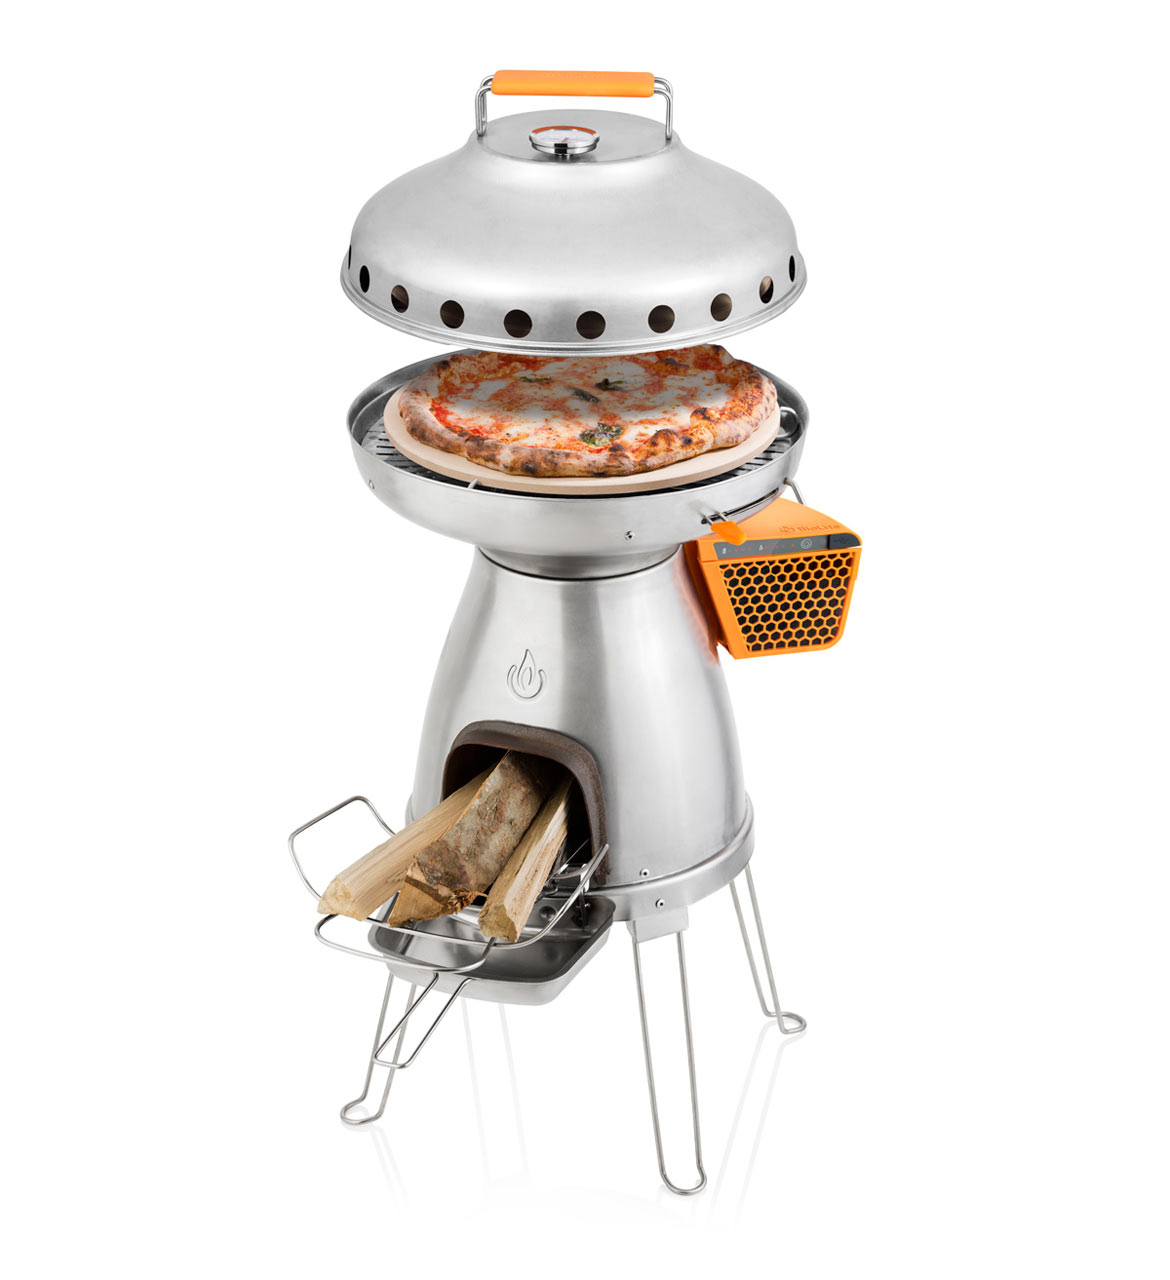 BaseCamp stove and PizzaDome addition by BioLite